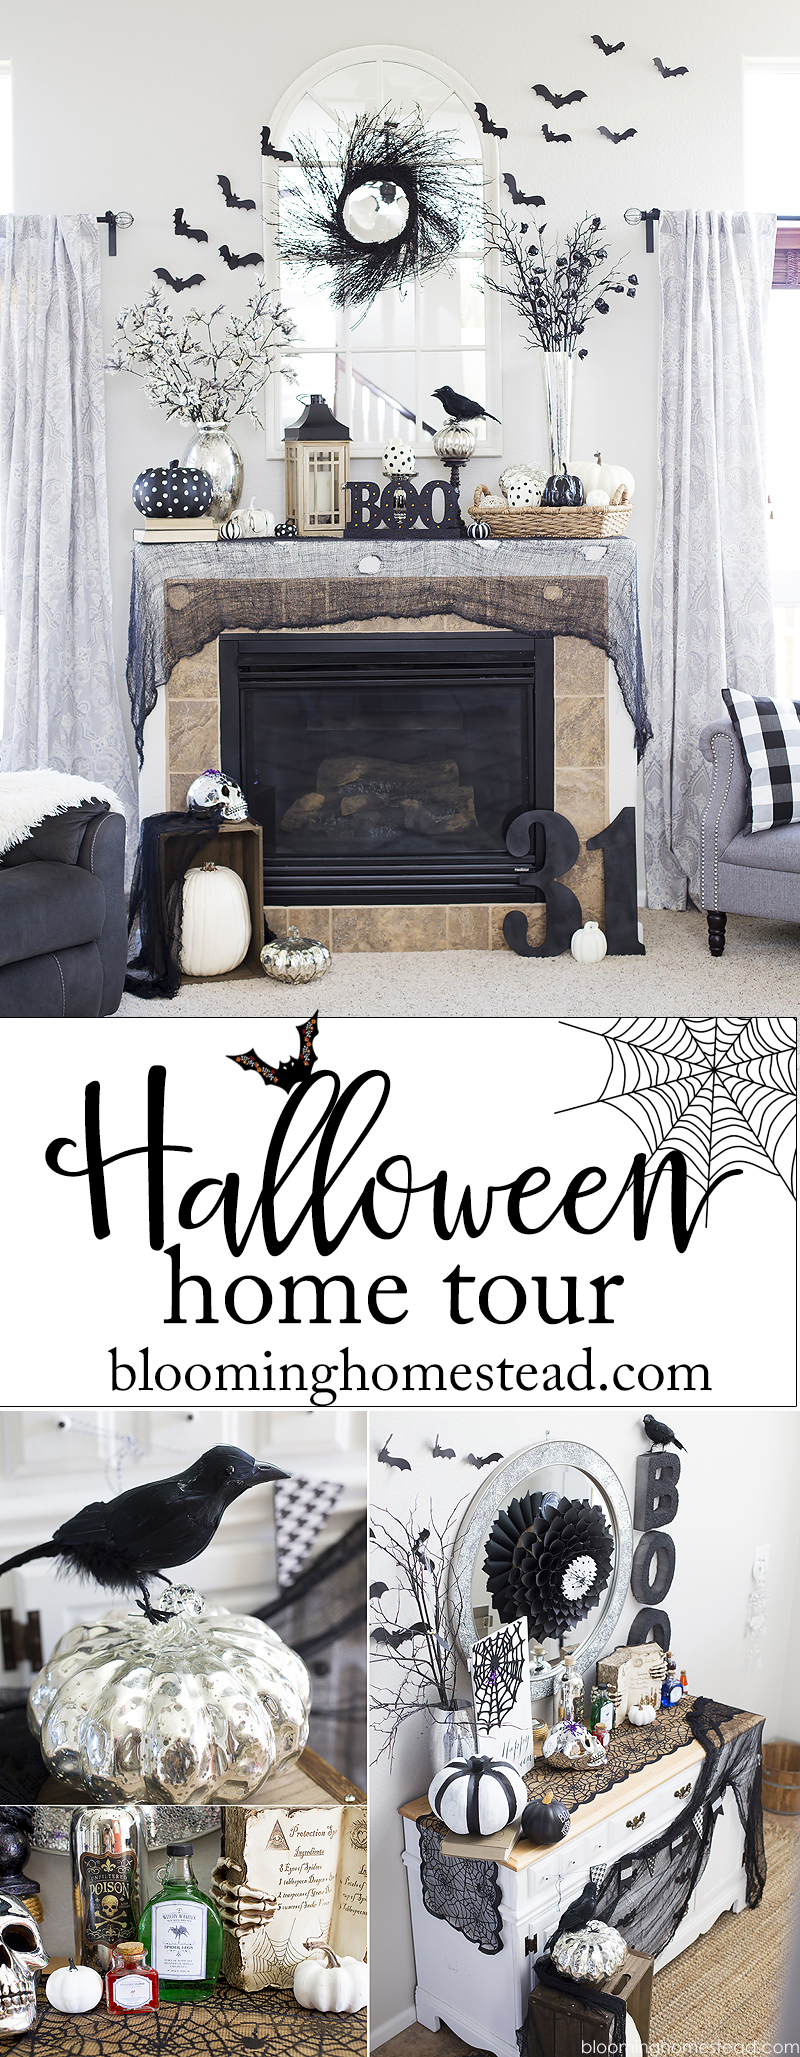 Halloween Home Tour - Blooming Homestead